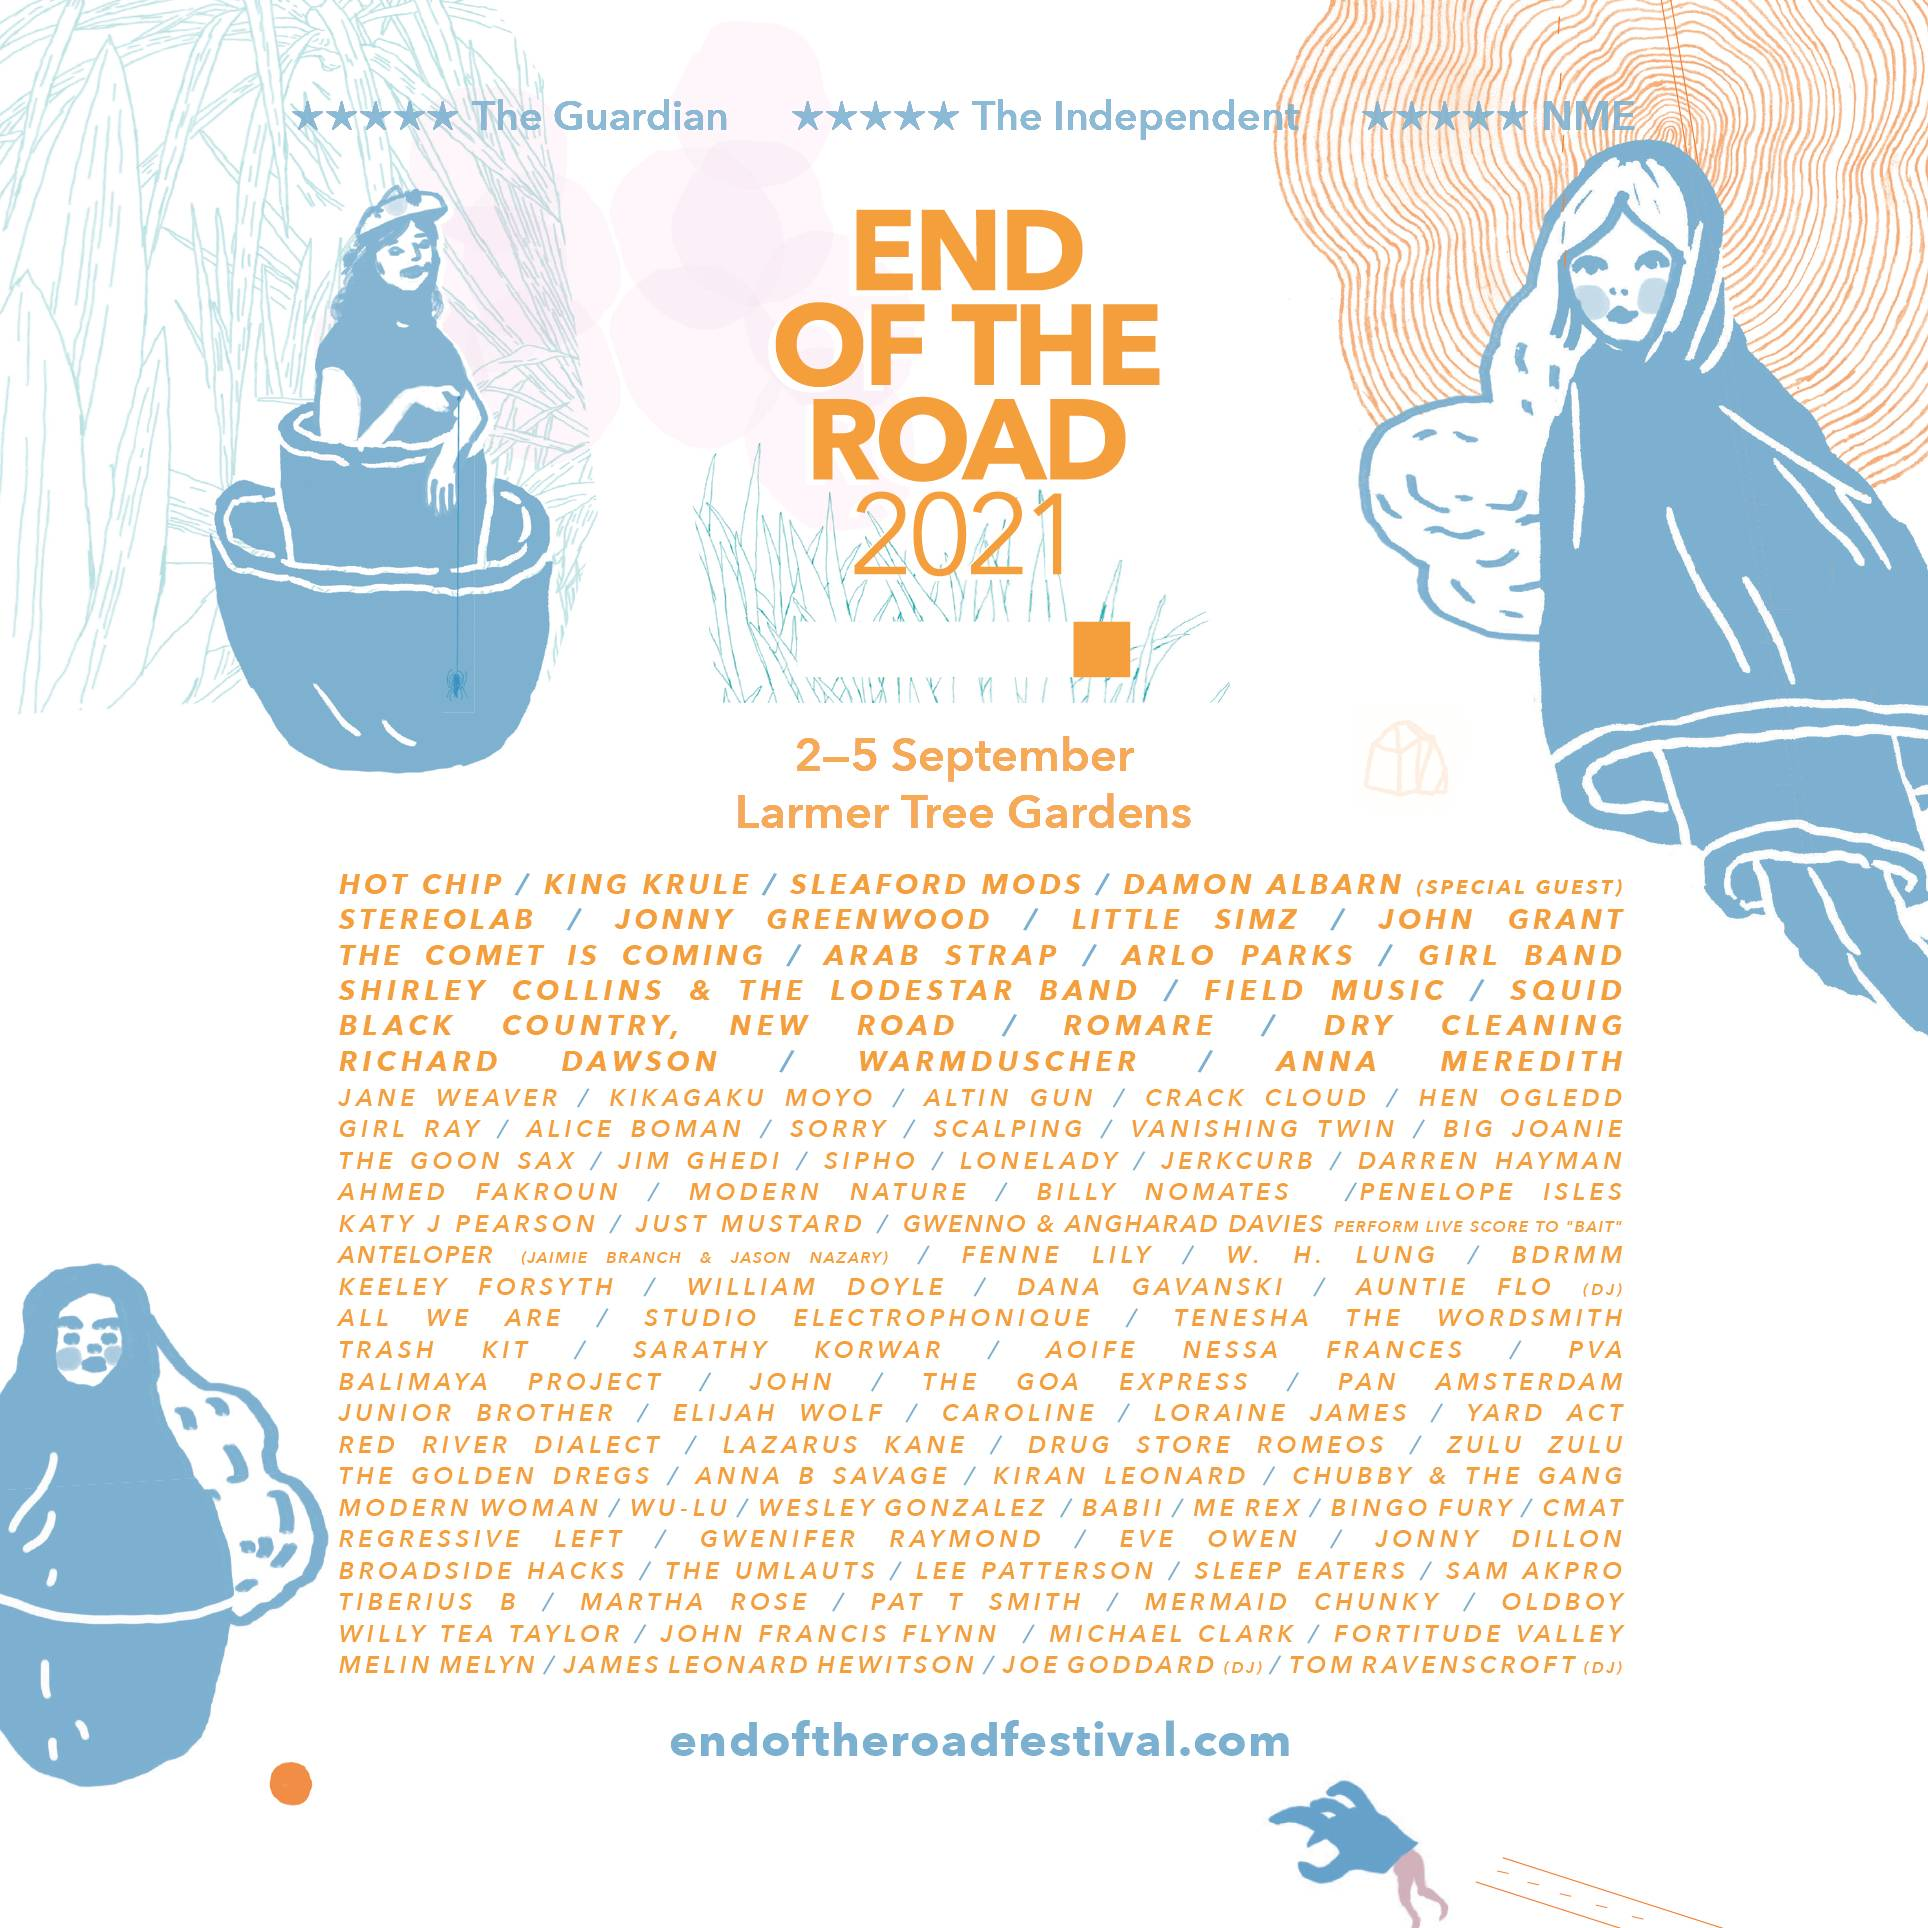 End Of The Road 2021 line-up